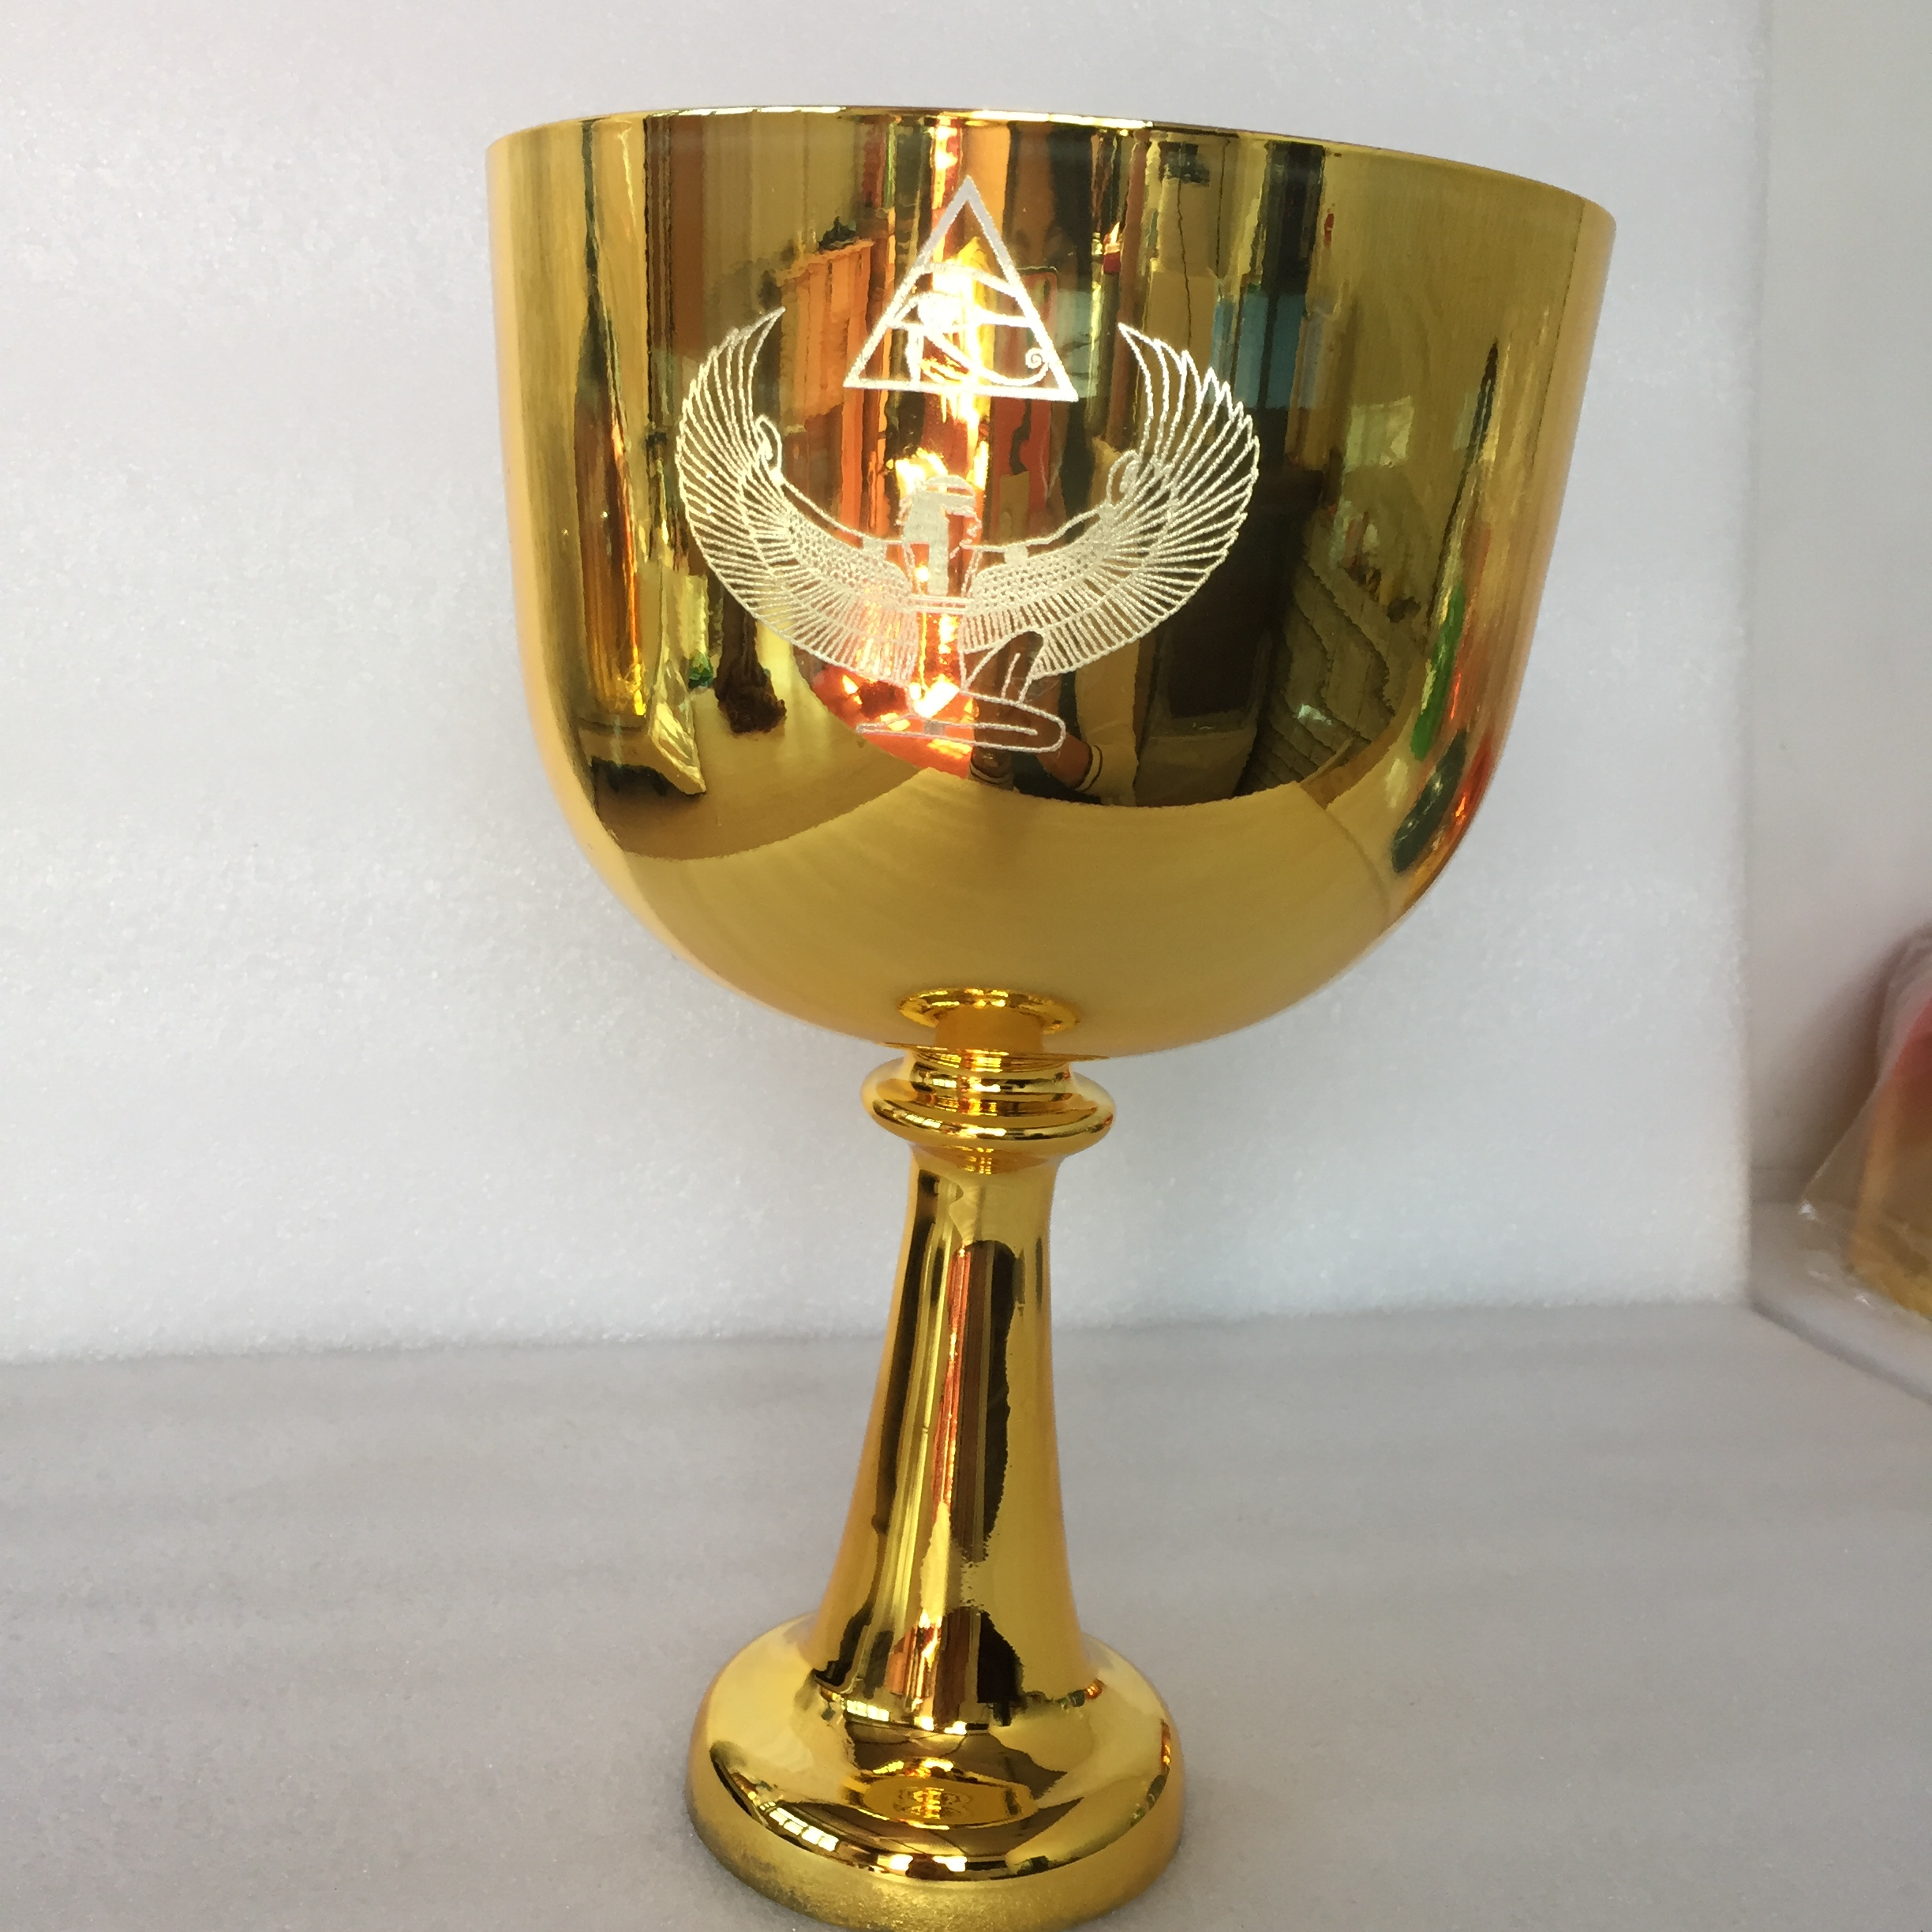 3rd Octave Golden Chalice With ISIS Design In  Perfect B Note In 432hz For Sound Healing.